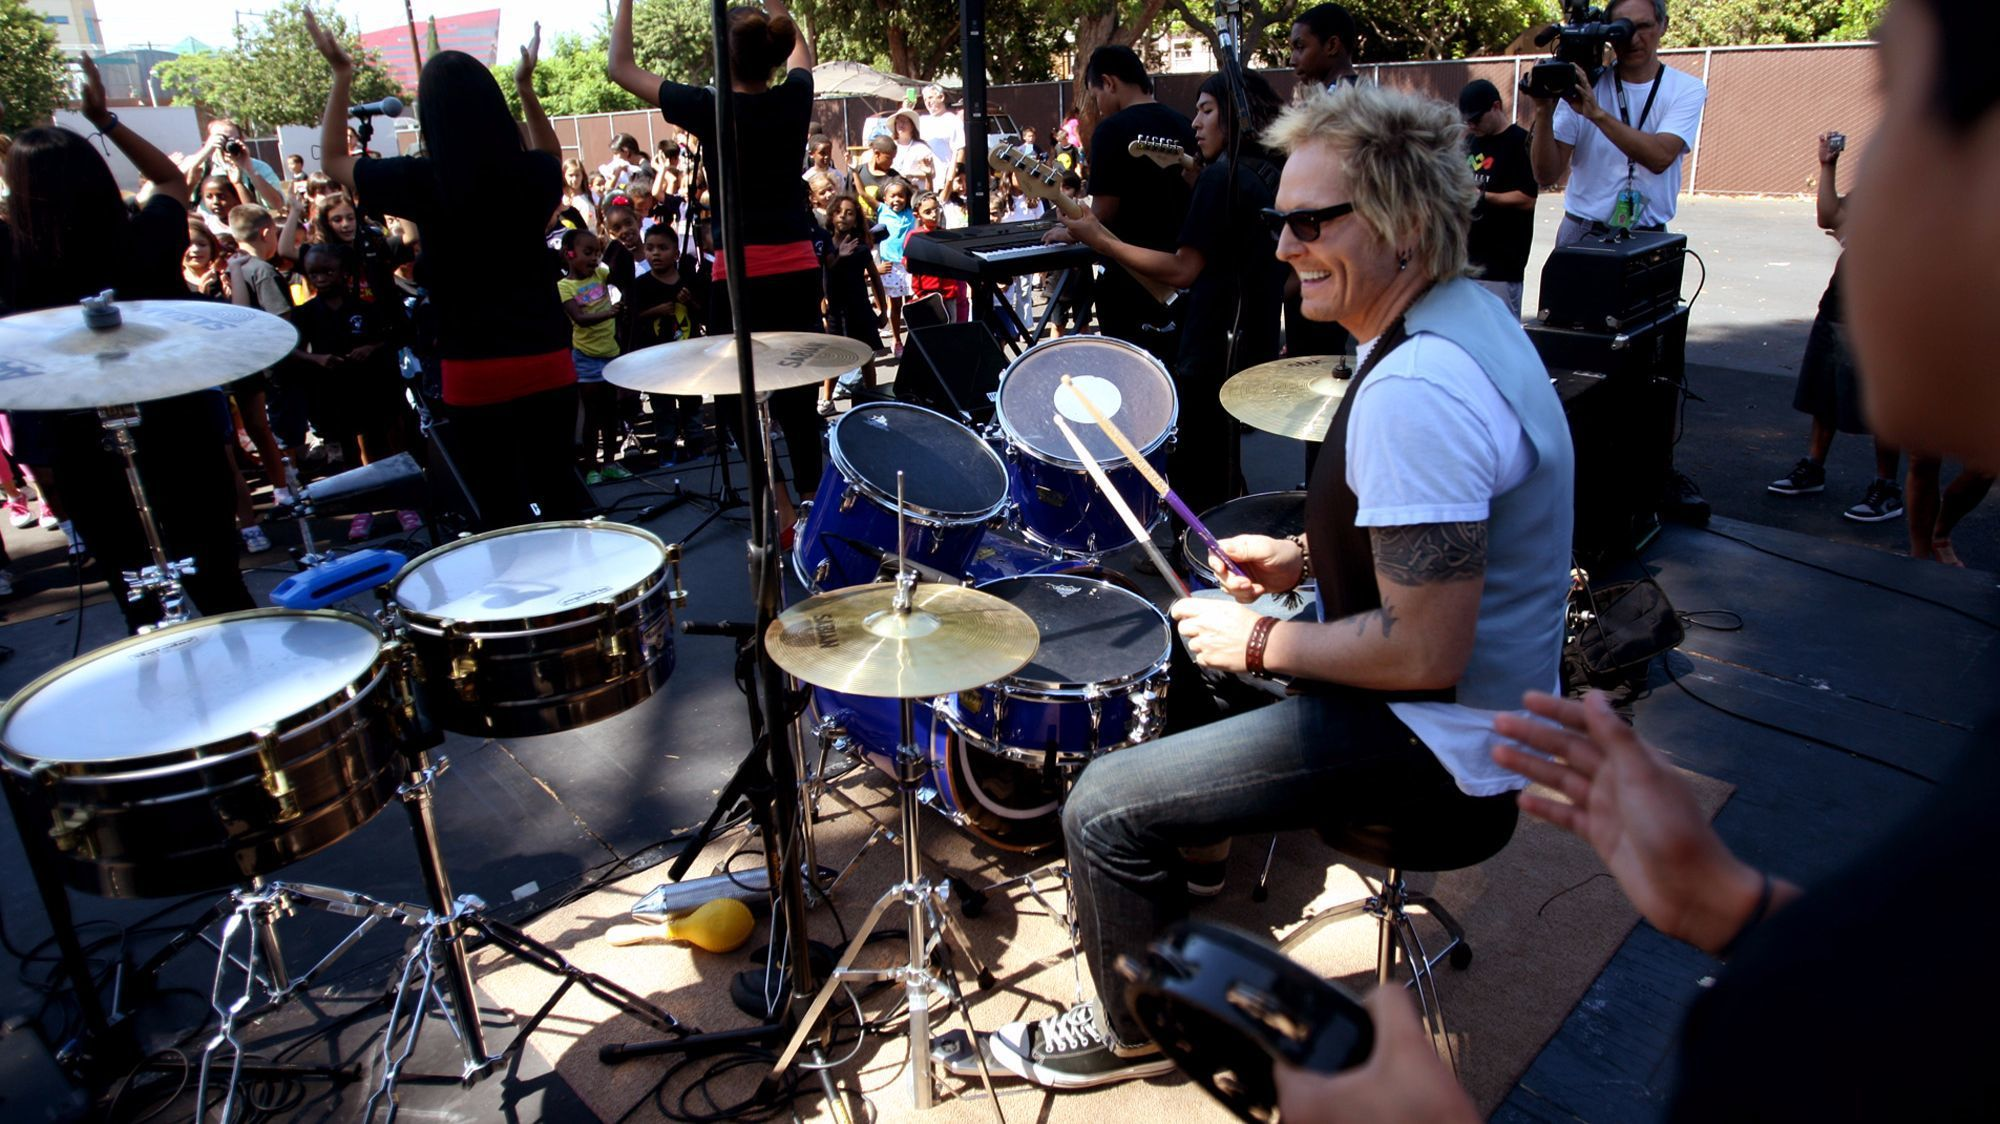 The ranch was originally owned by drummer Matt Sorum, formerly of Guns N' Roses.